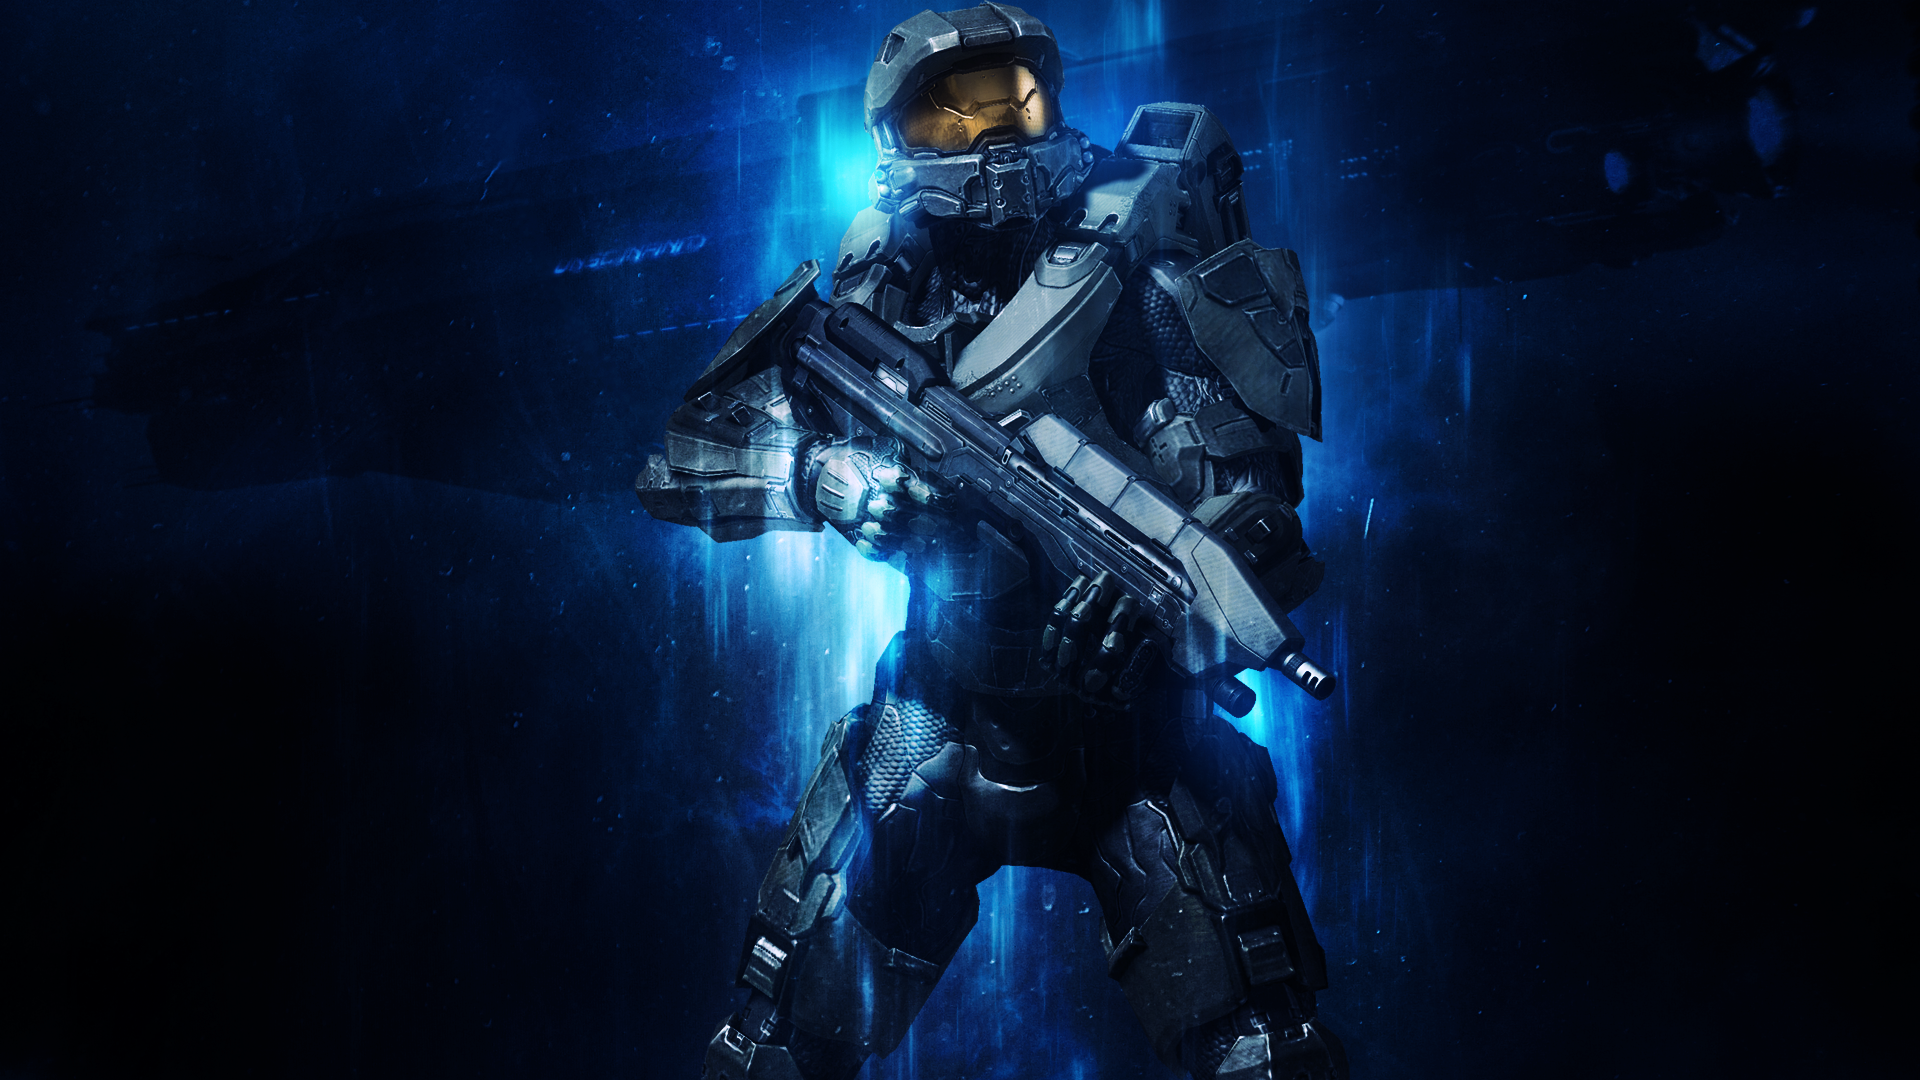 Fonds dcran Halo 5 PC et Tablettes iPad etc 1920x1080